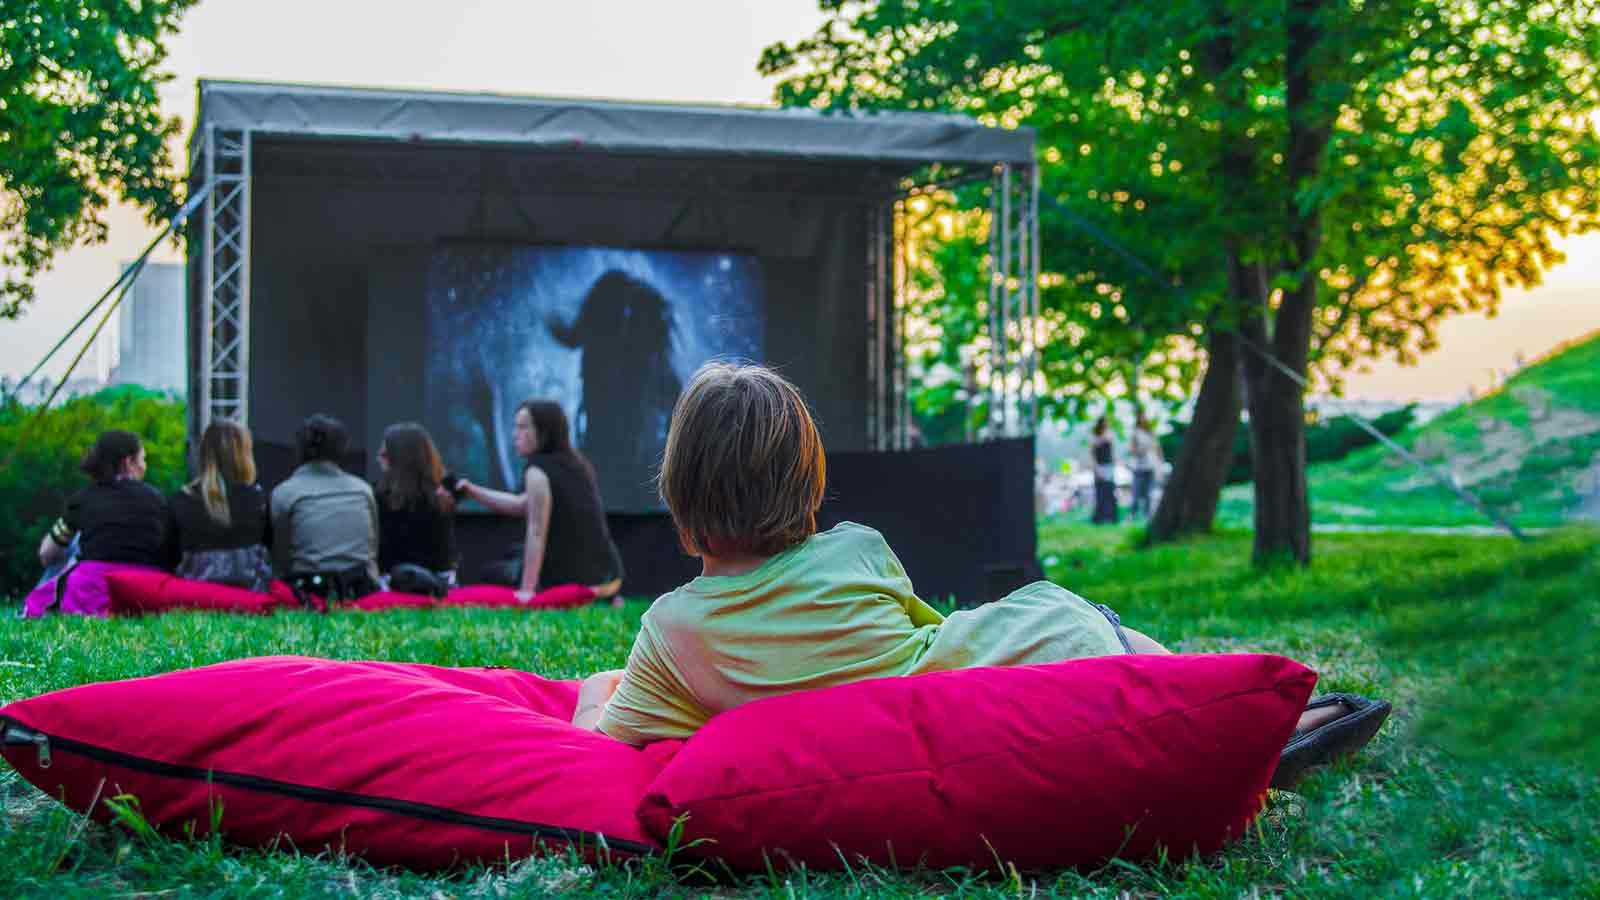 People watching a movie in a park.